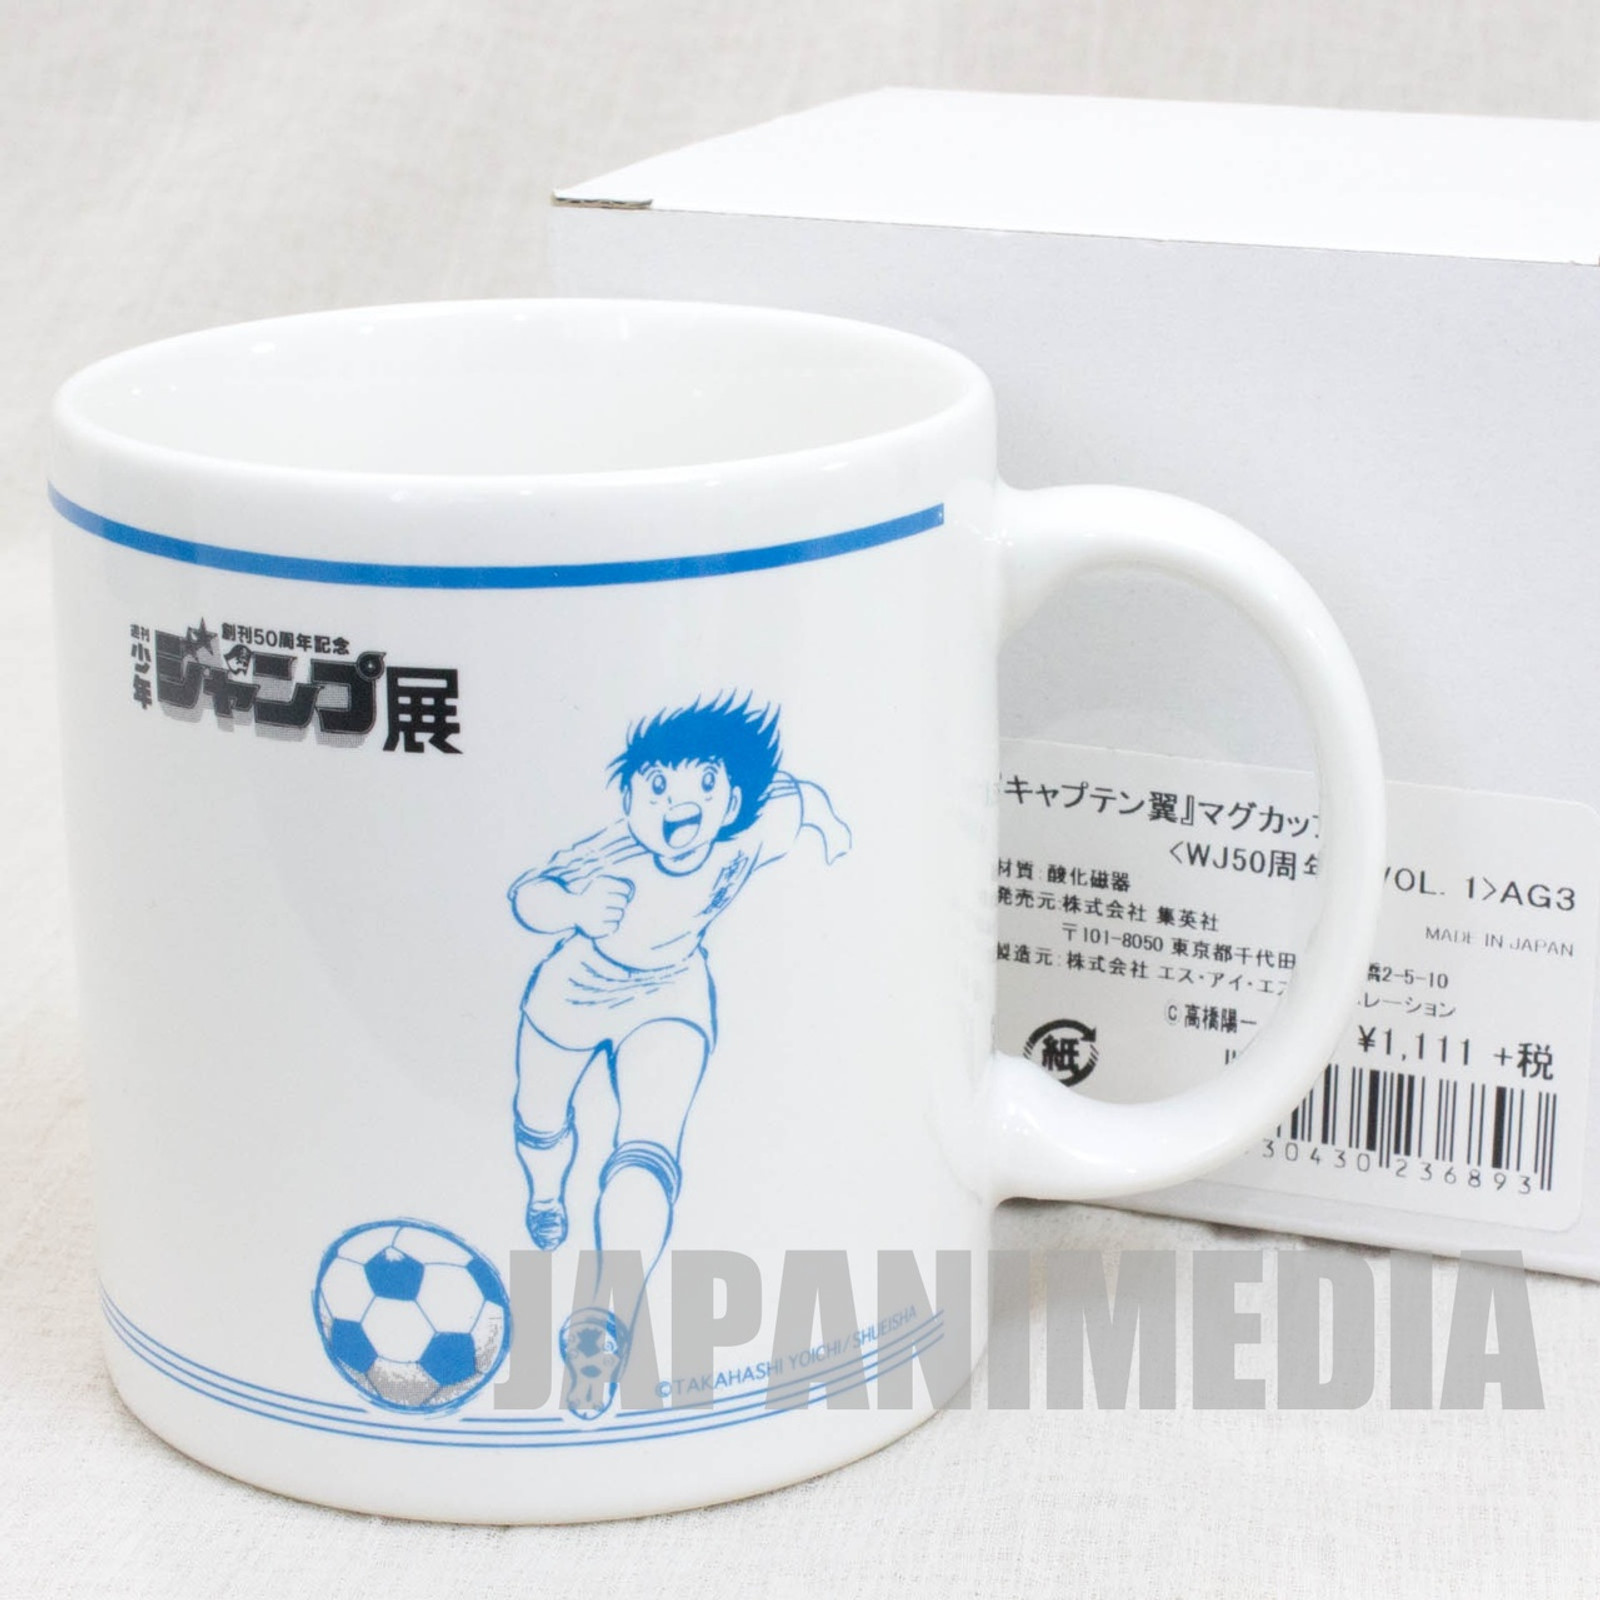 Captain Tsubasa Mug Weekly Jump Magazine 50th Anniversary JAPAN ANIME MANGA